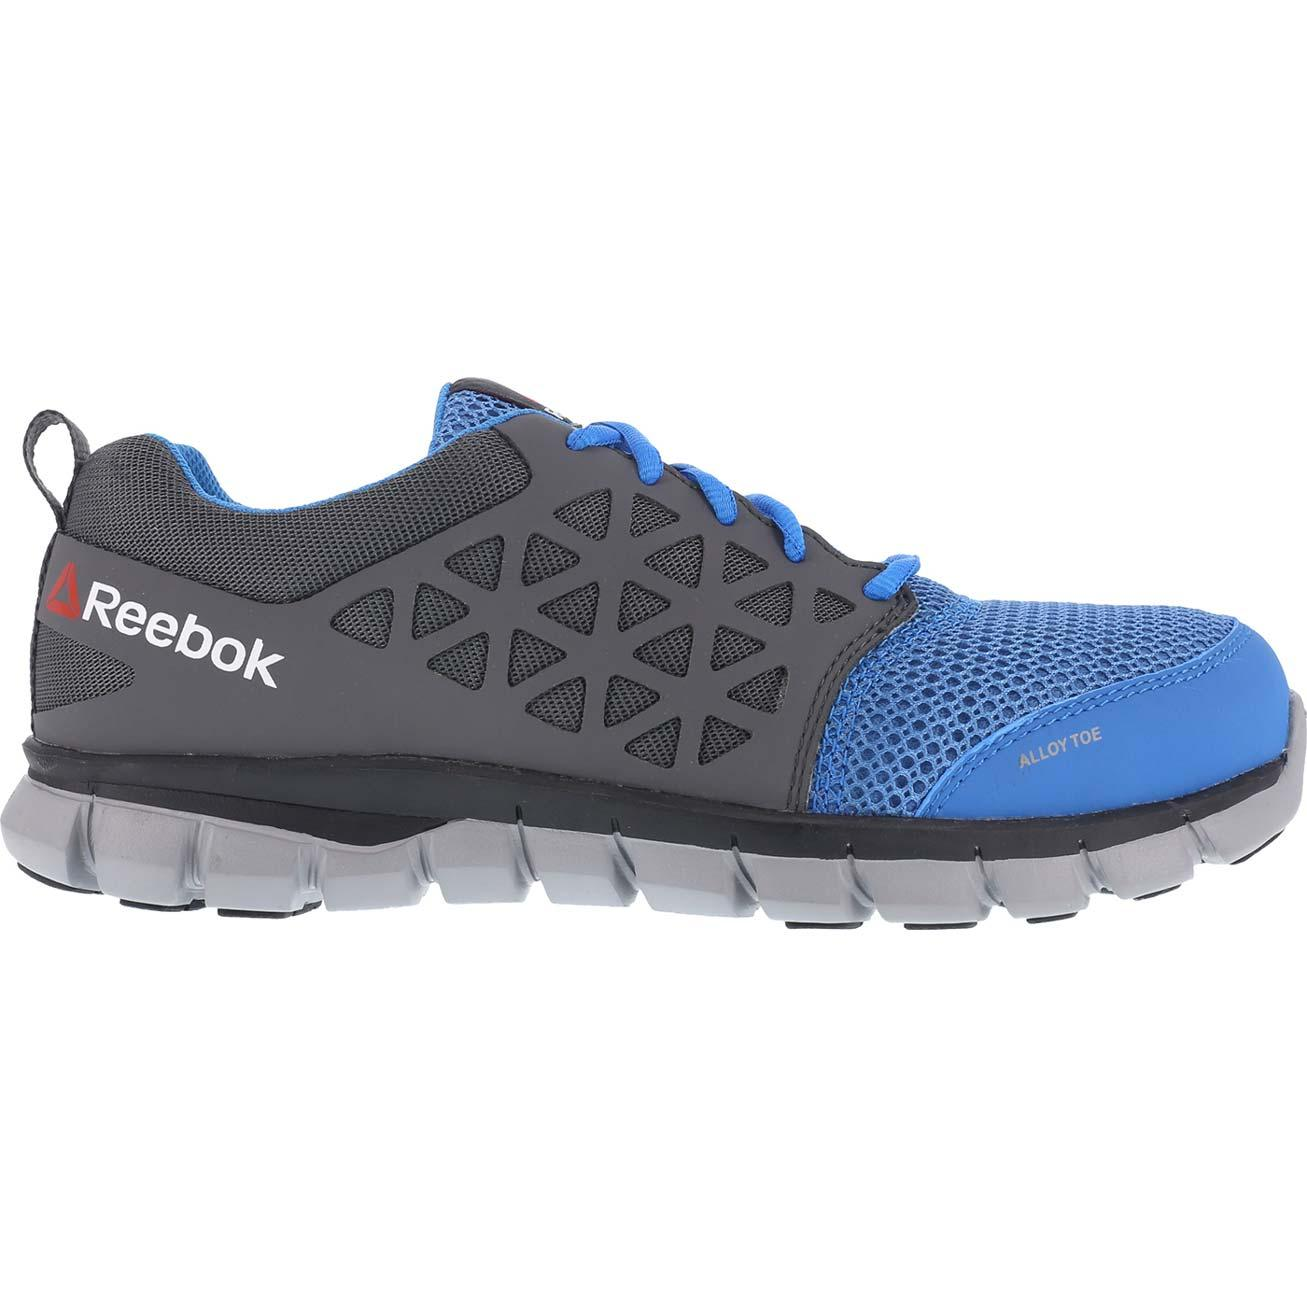 Reebok Sublite Cushion Work Alloy Toe Static Dissipative Work Athletic Shoe